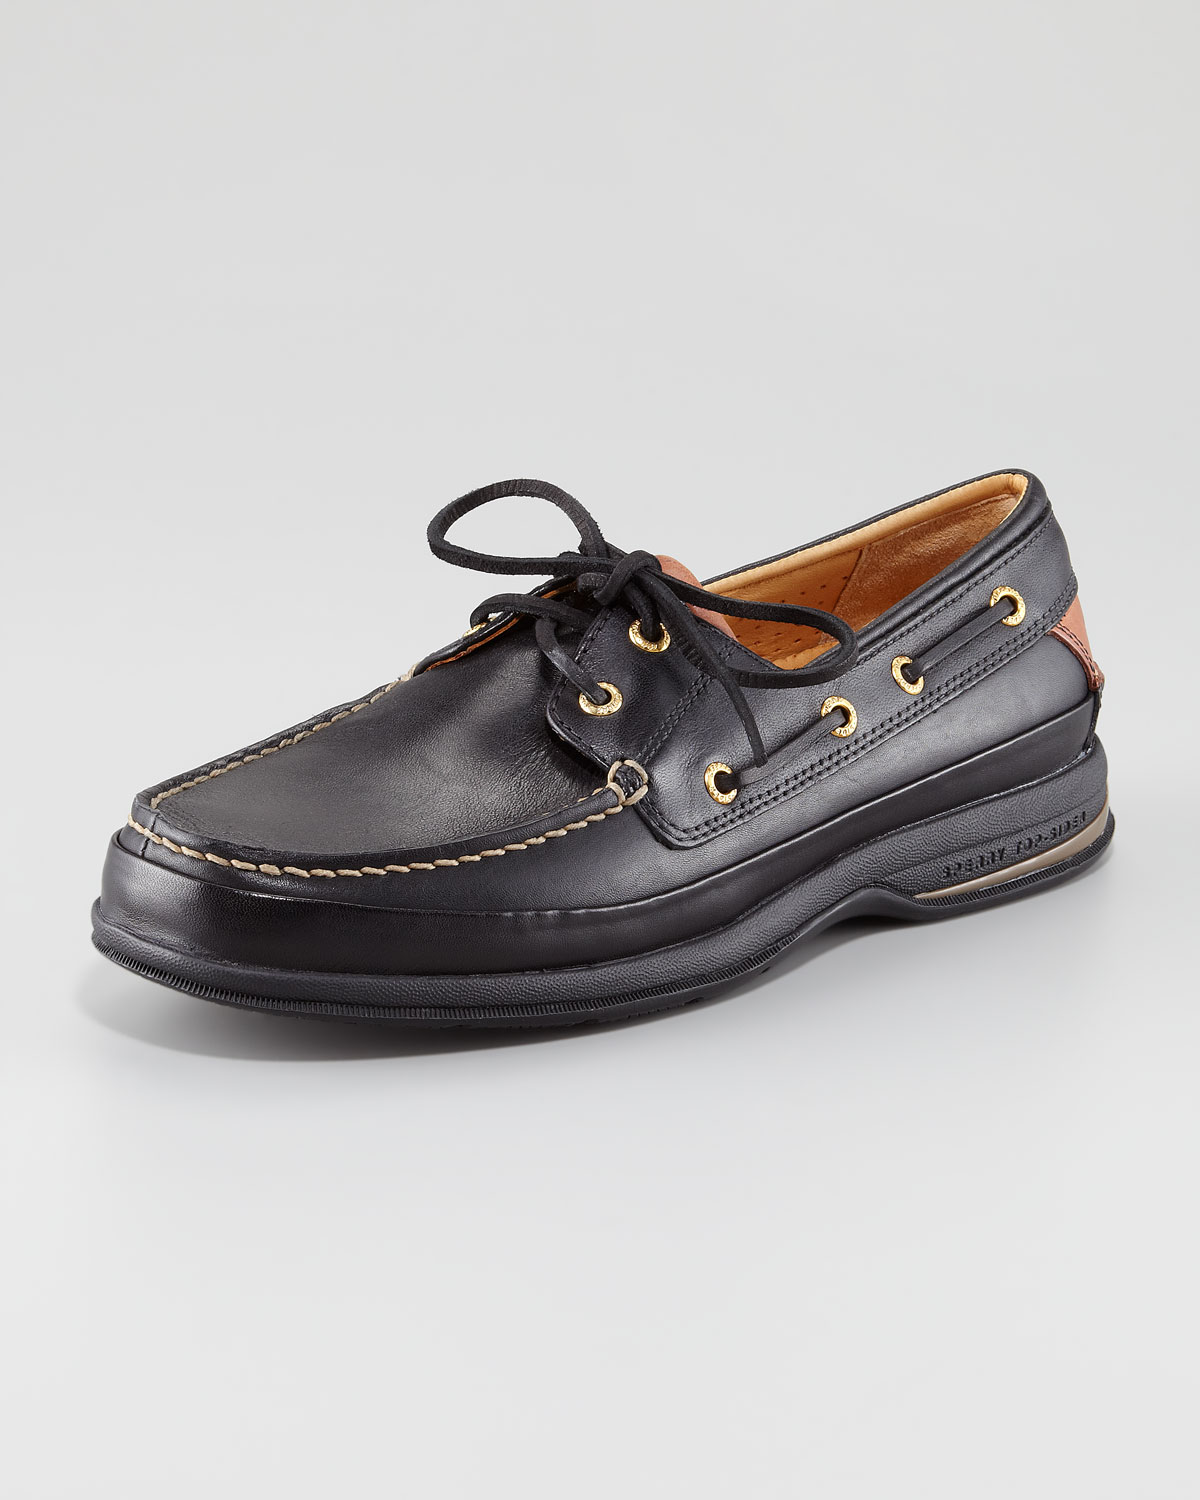 Sperry Men's Gold Cup Kennebunk ASV 1-Eye Loafer-Black |Sperry Gold